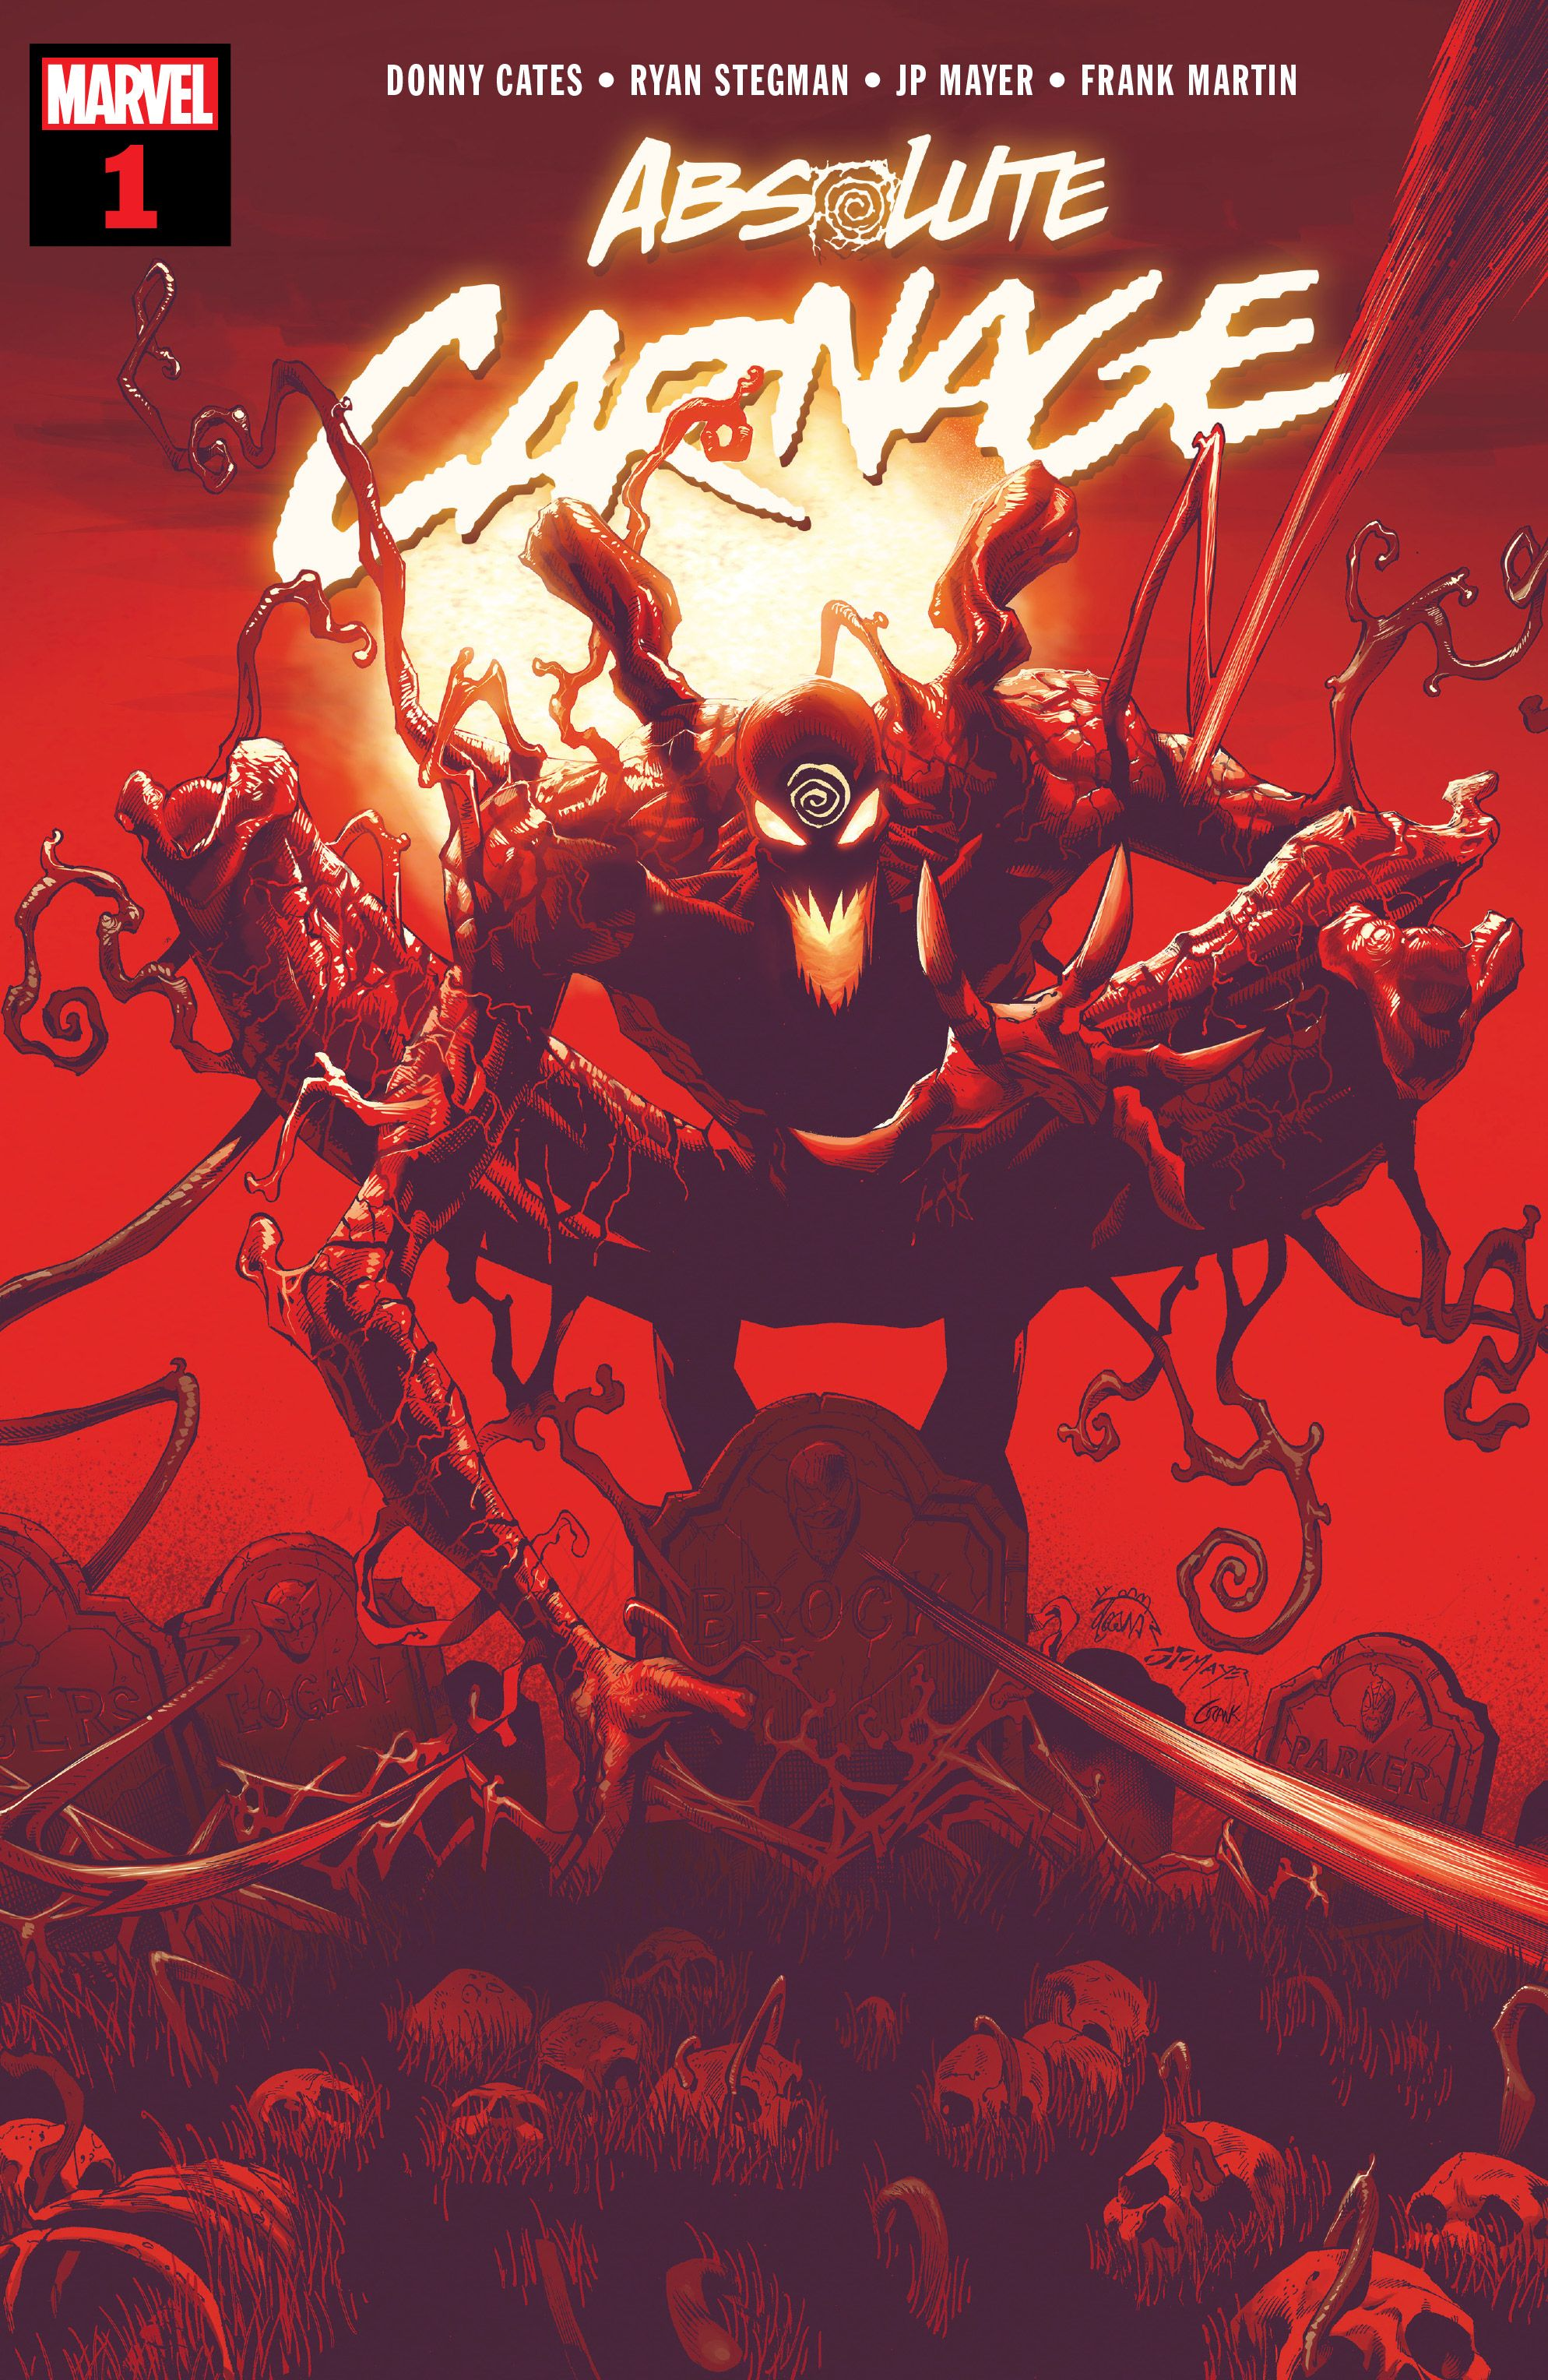 Carnage is trying to eat everyone in Marvel Comics, and only Venom can stop him